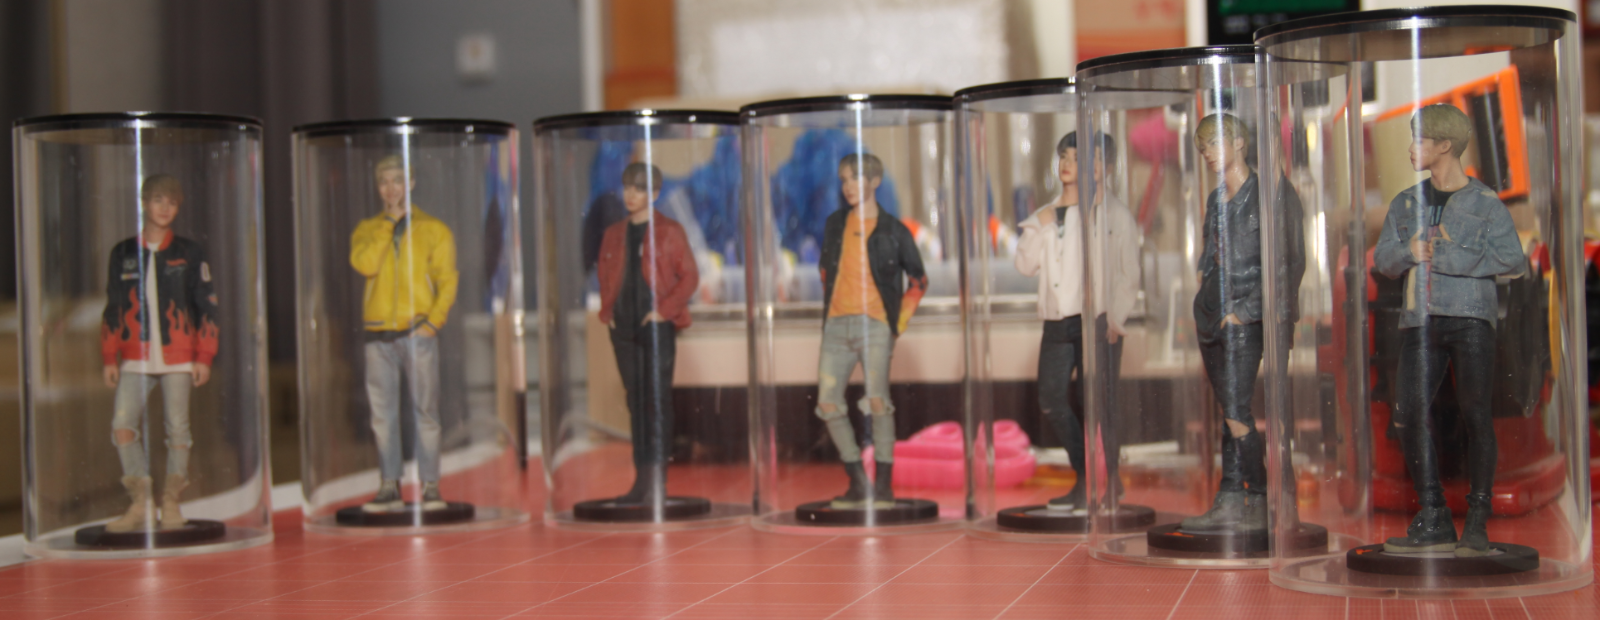 BTS Bangtan Boys Real Figure Limited Edition KPOP with Free Gifts